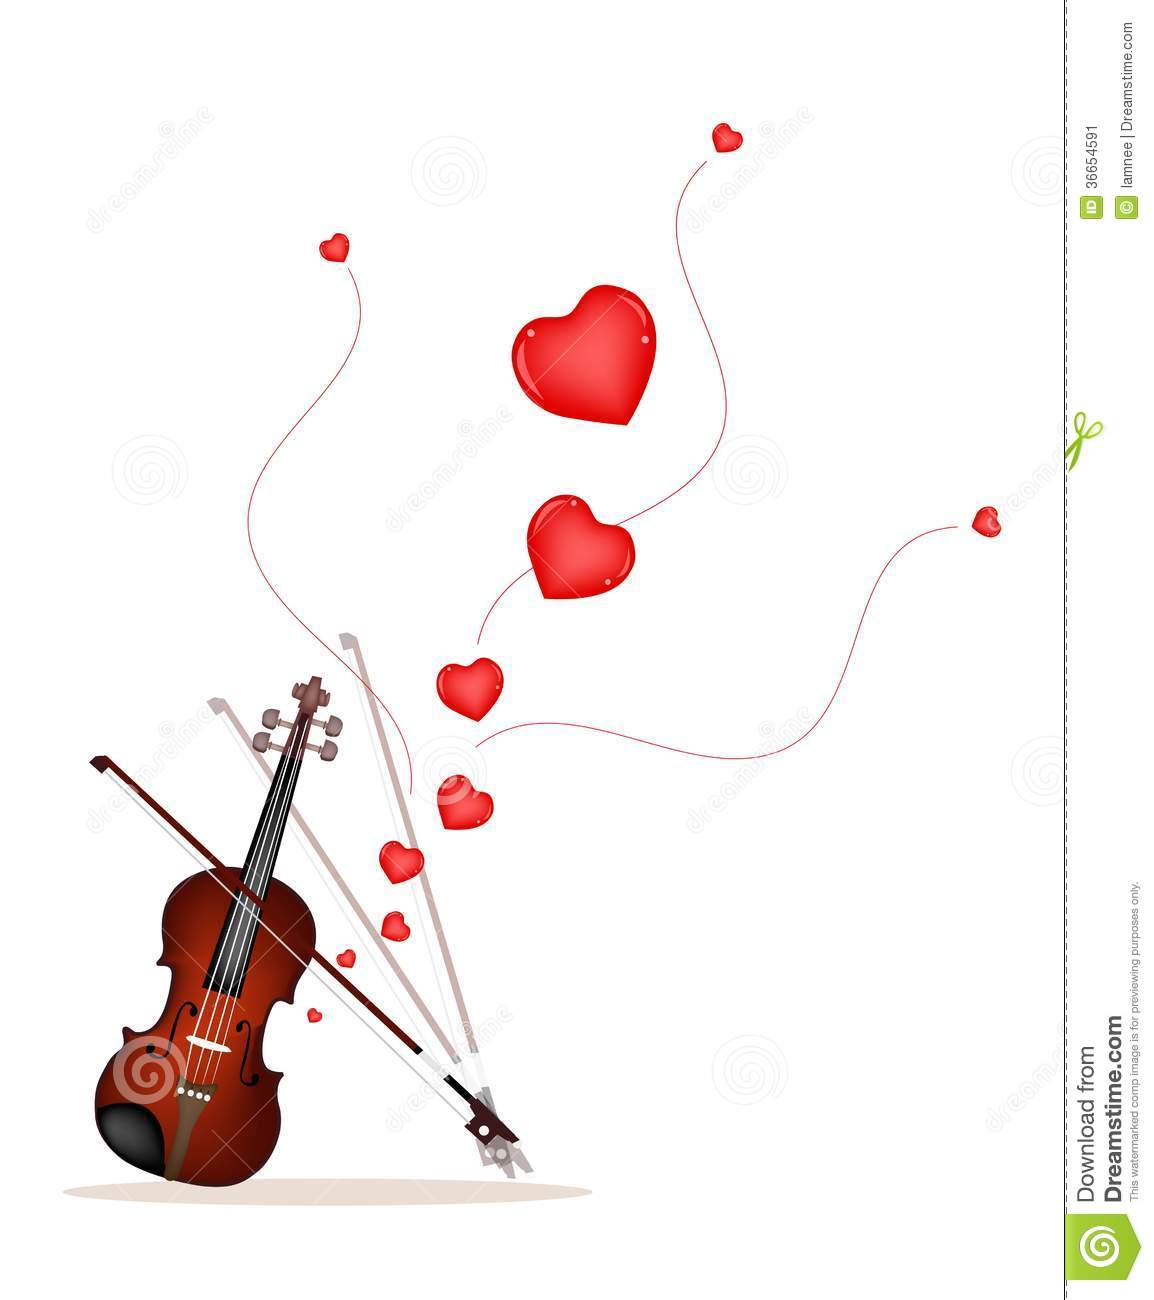 A Beautiful Violin On Playing A Love Music Stock Image